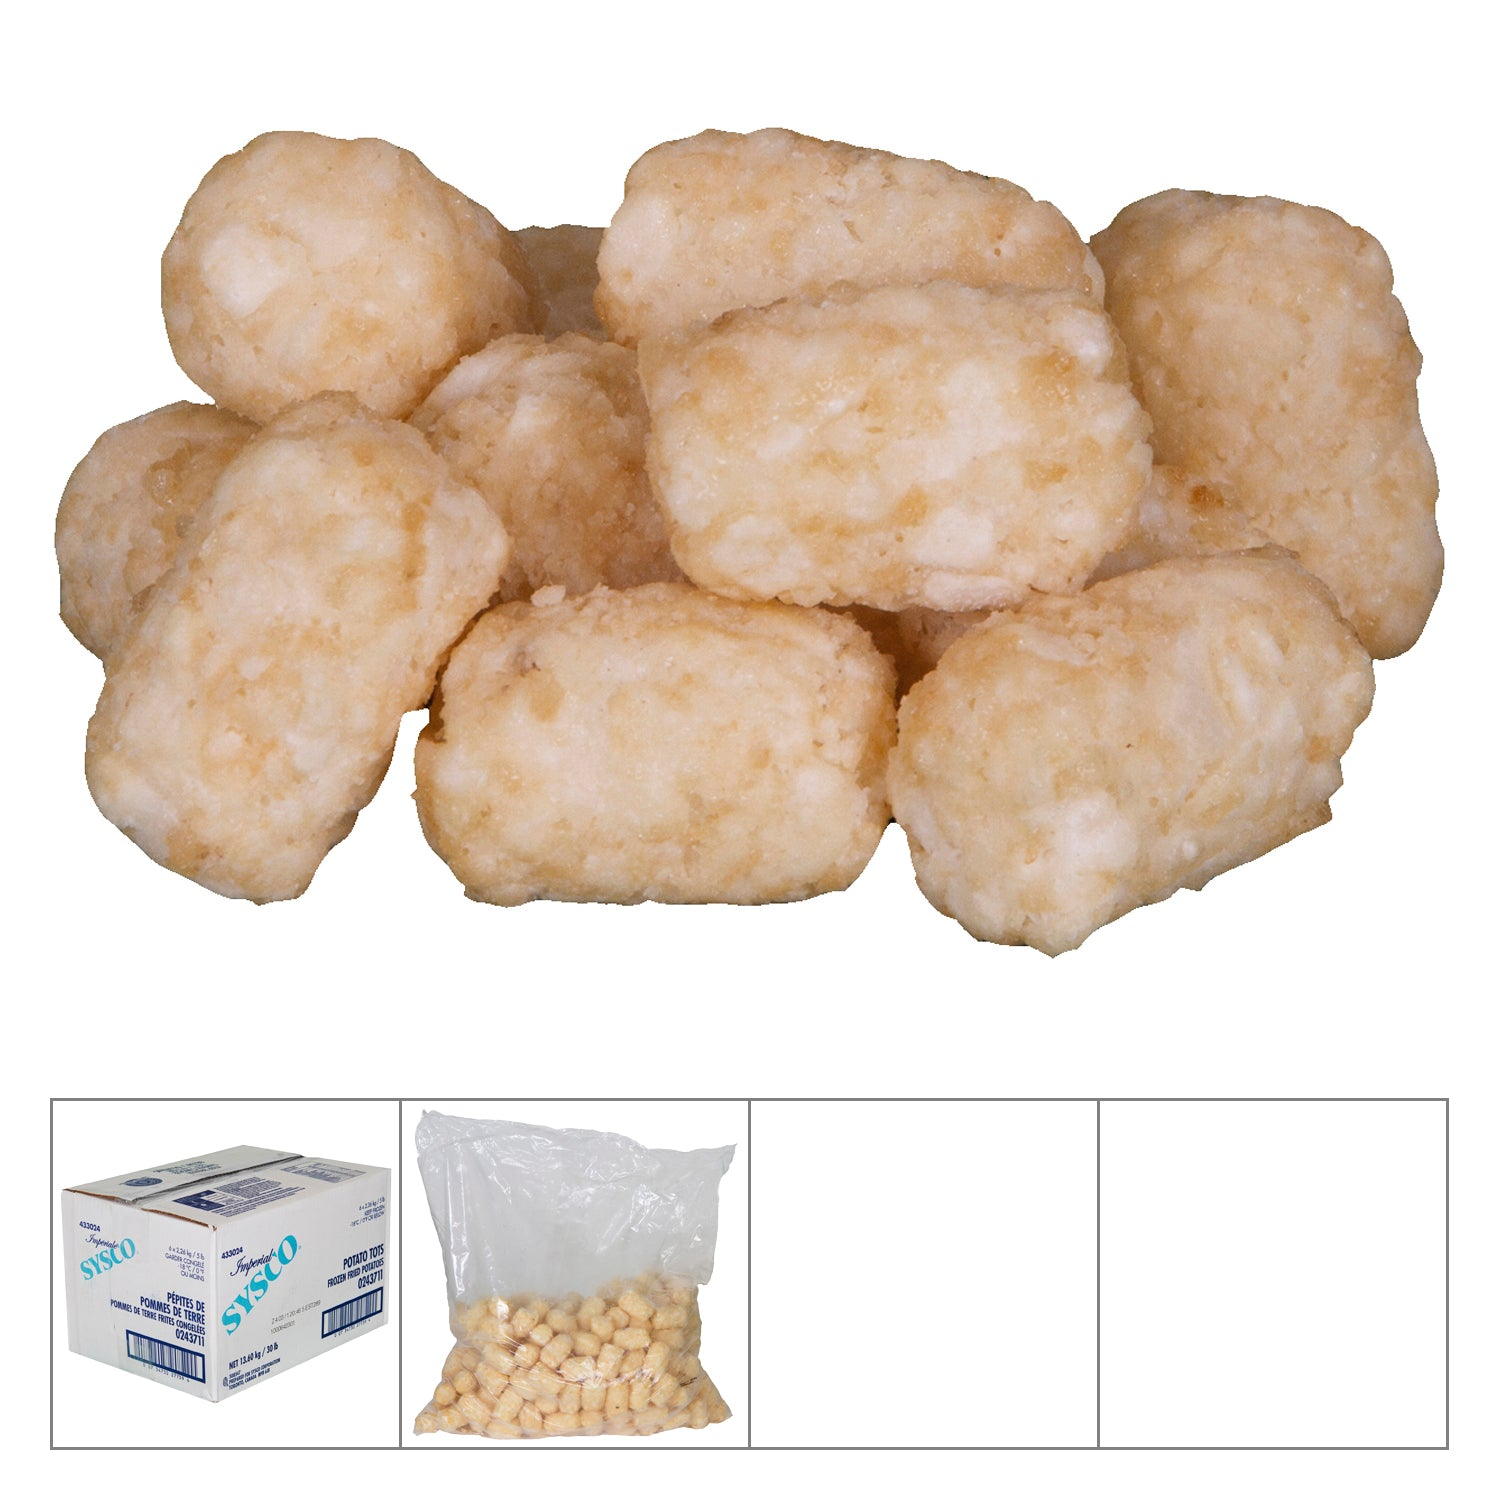 Sysco Imperial Frozen Potato Bites 5 lb - 6 Pack [$2.13/lb]